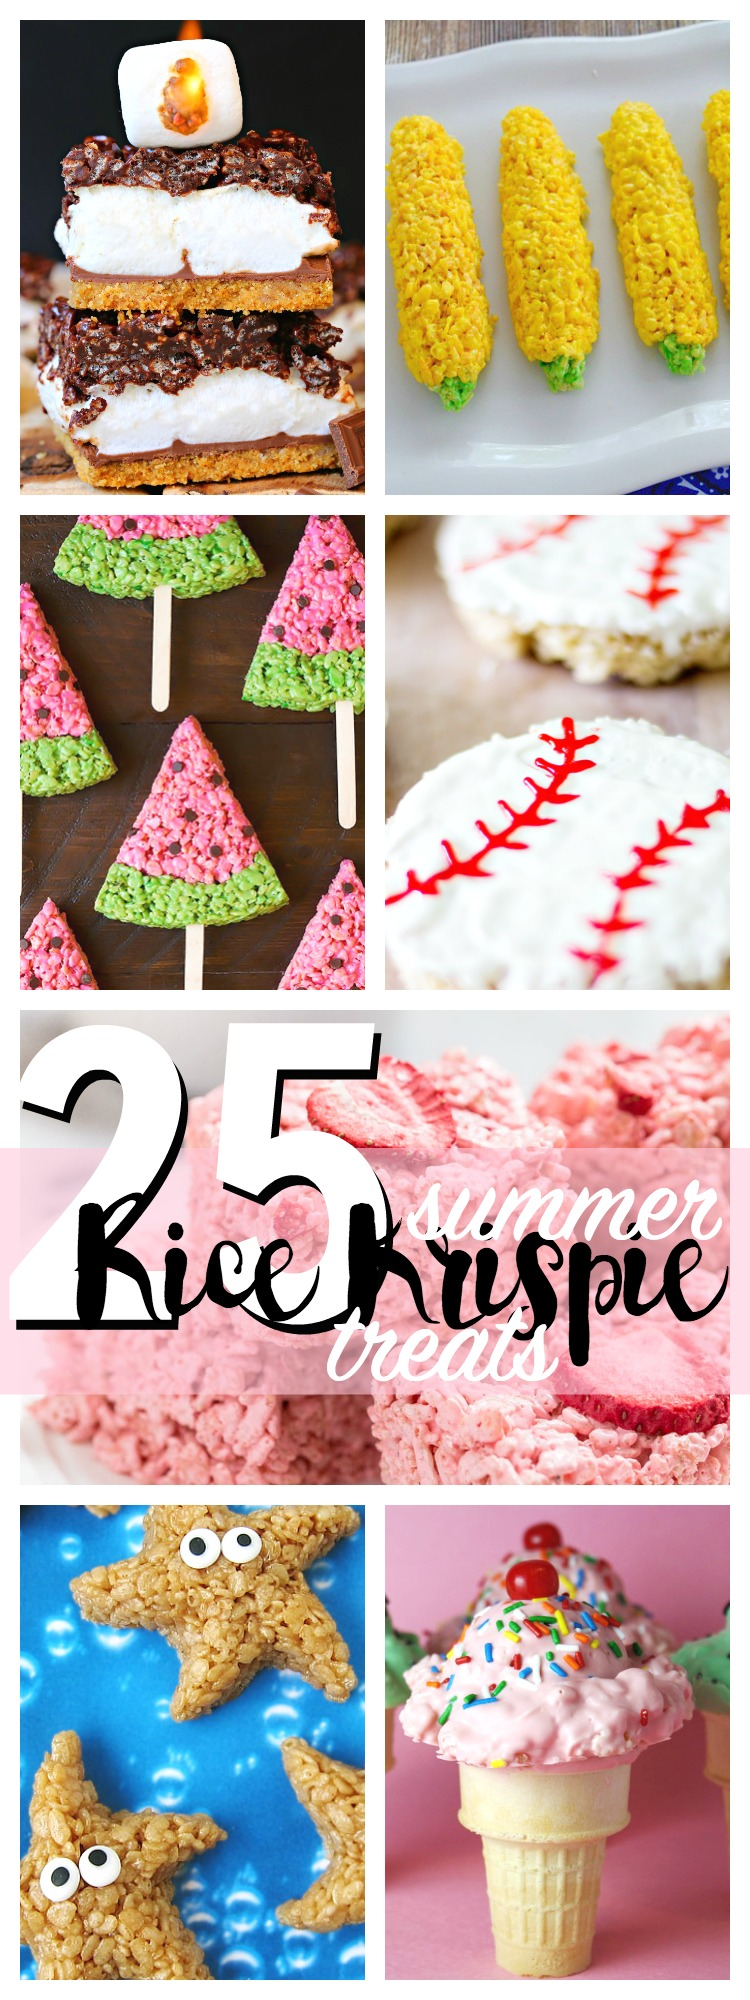 25 Rice Krispie Treats to Make for an Easy Summer Dessert!